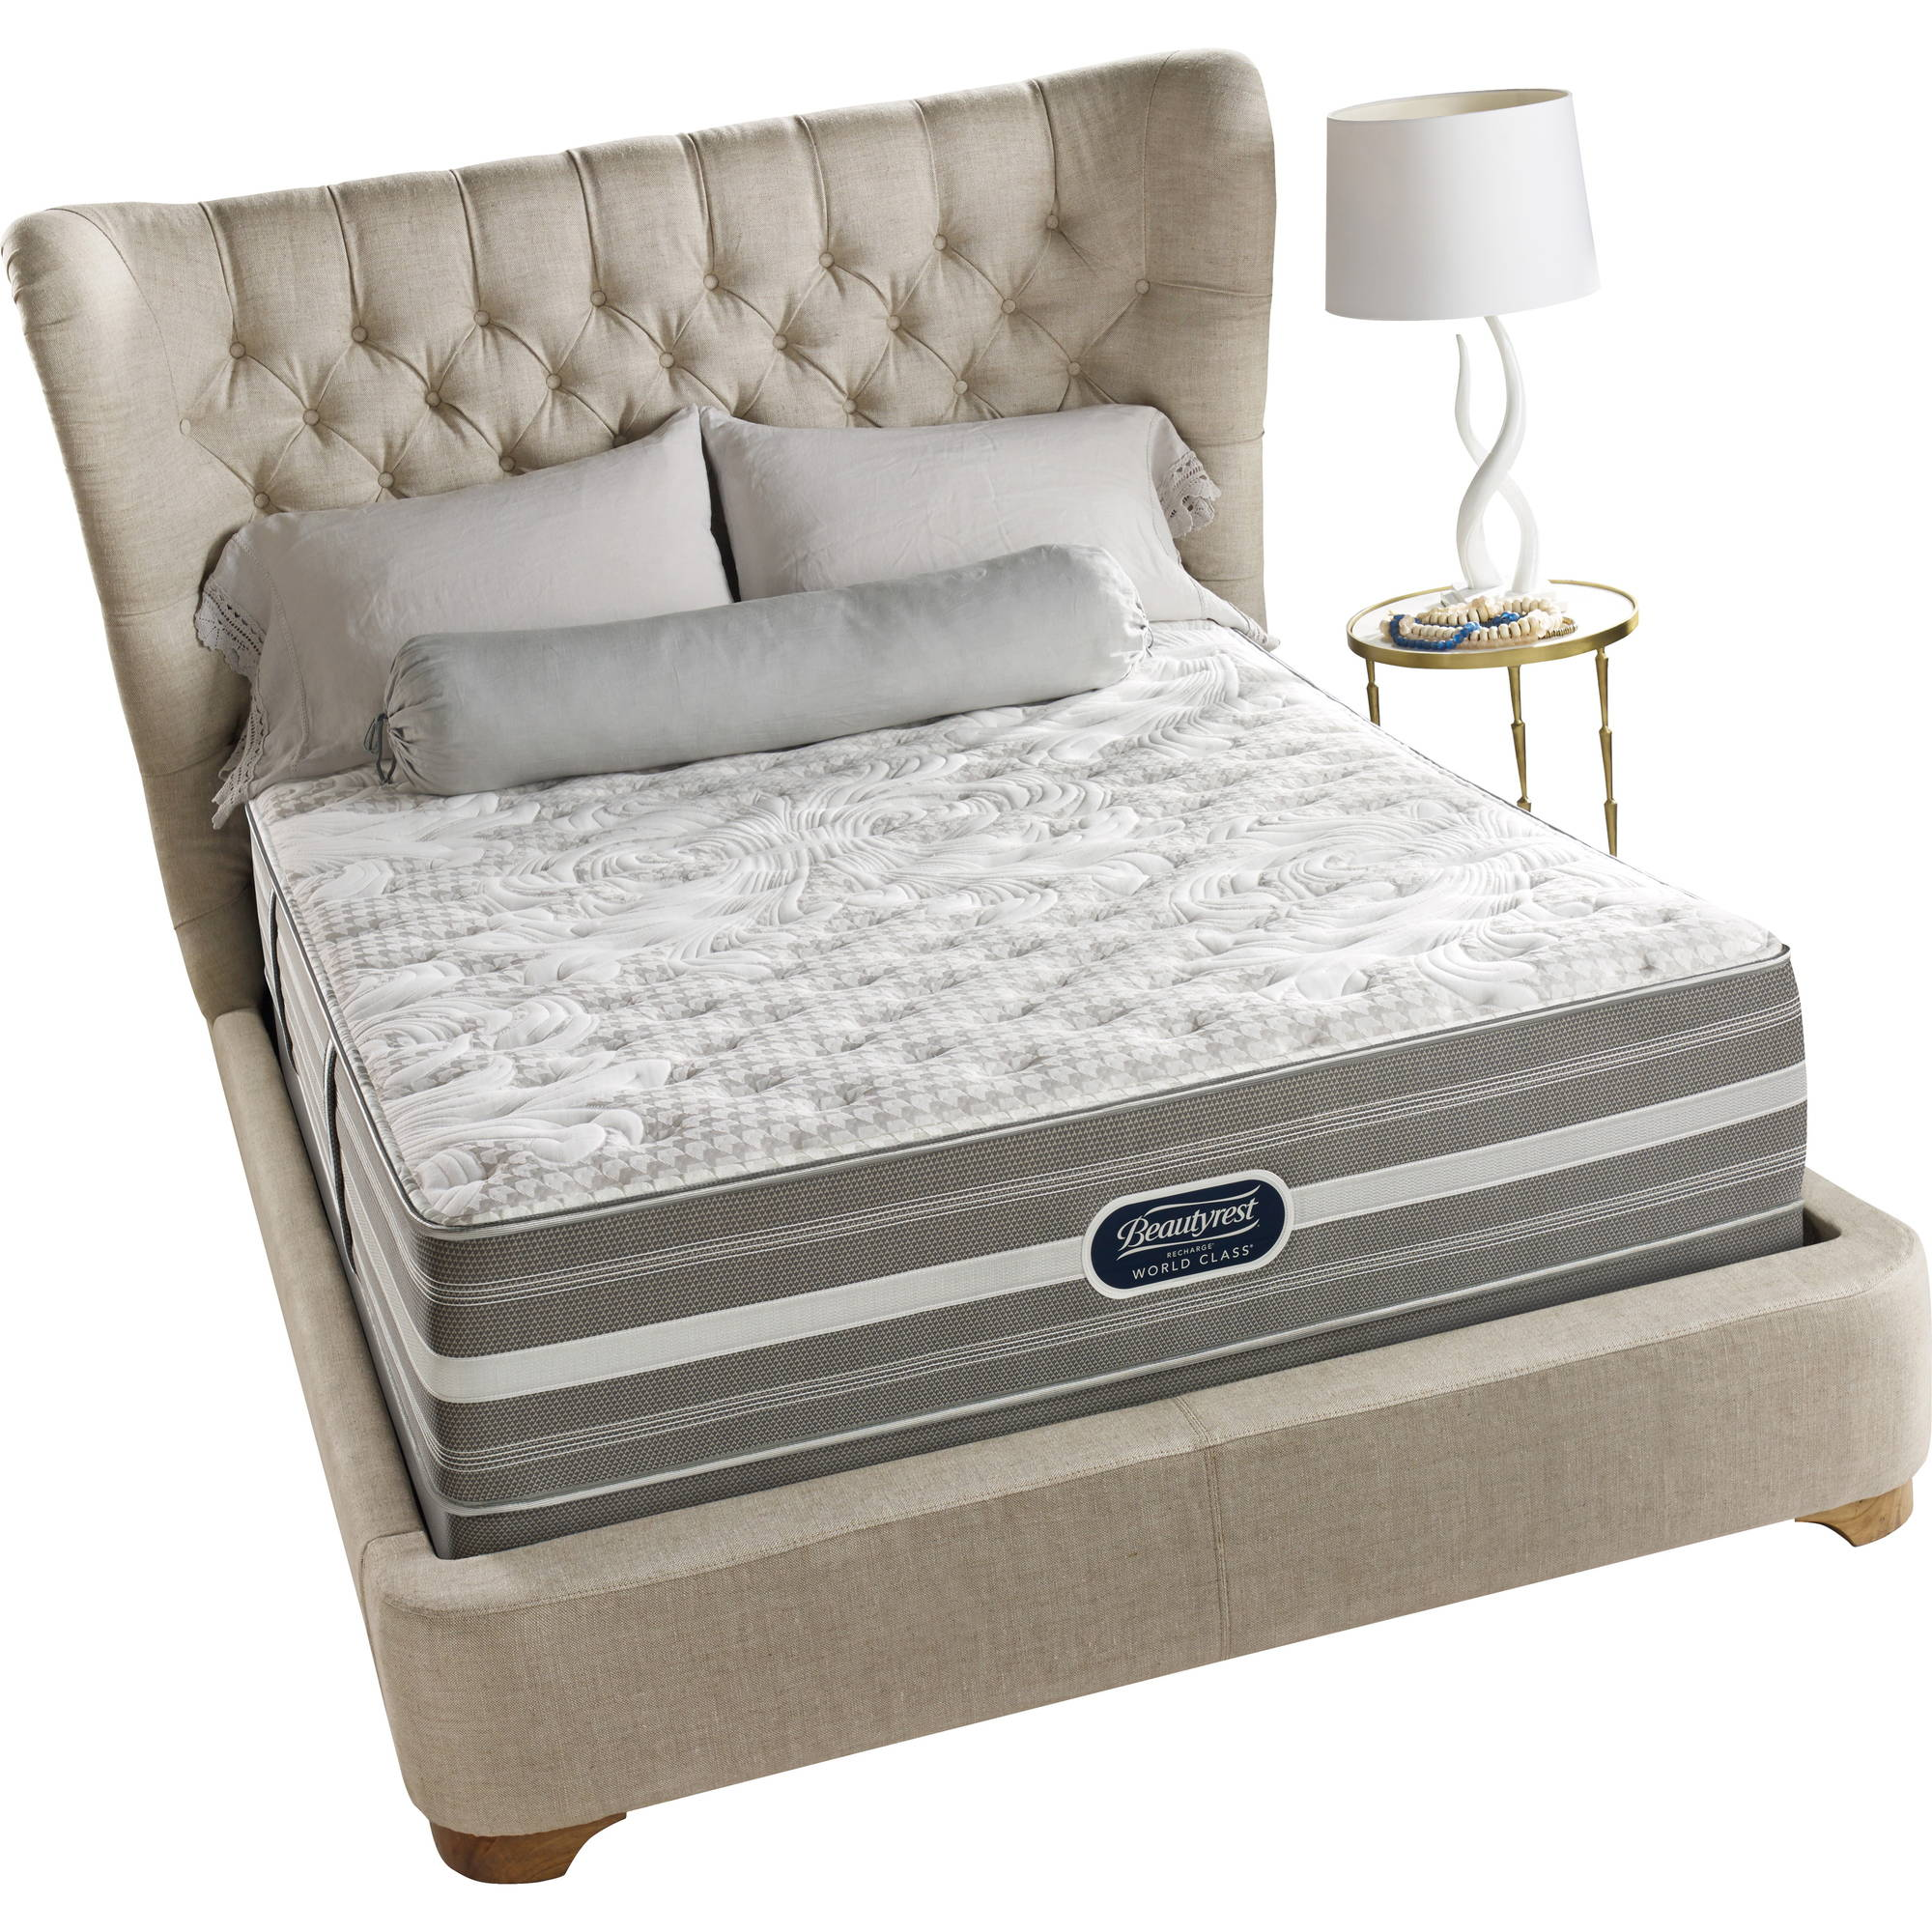 "Beautyrest Recharge World Class Irving Ultimate 13"" Firm Mattress, Multiple Sizes"